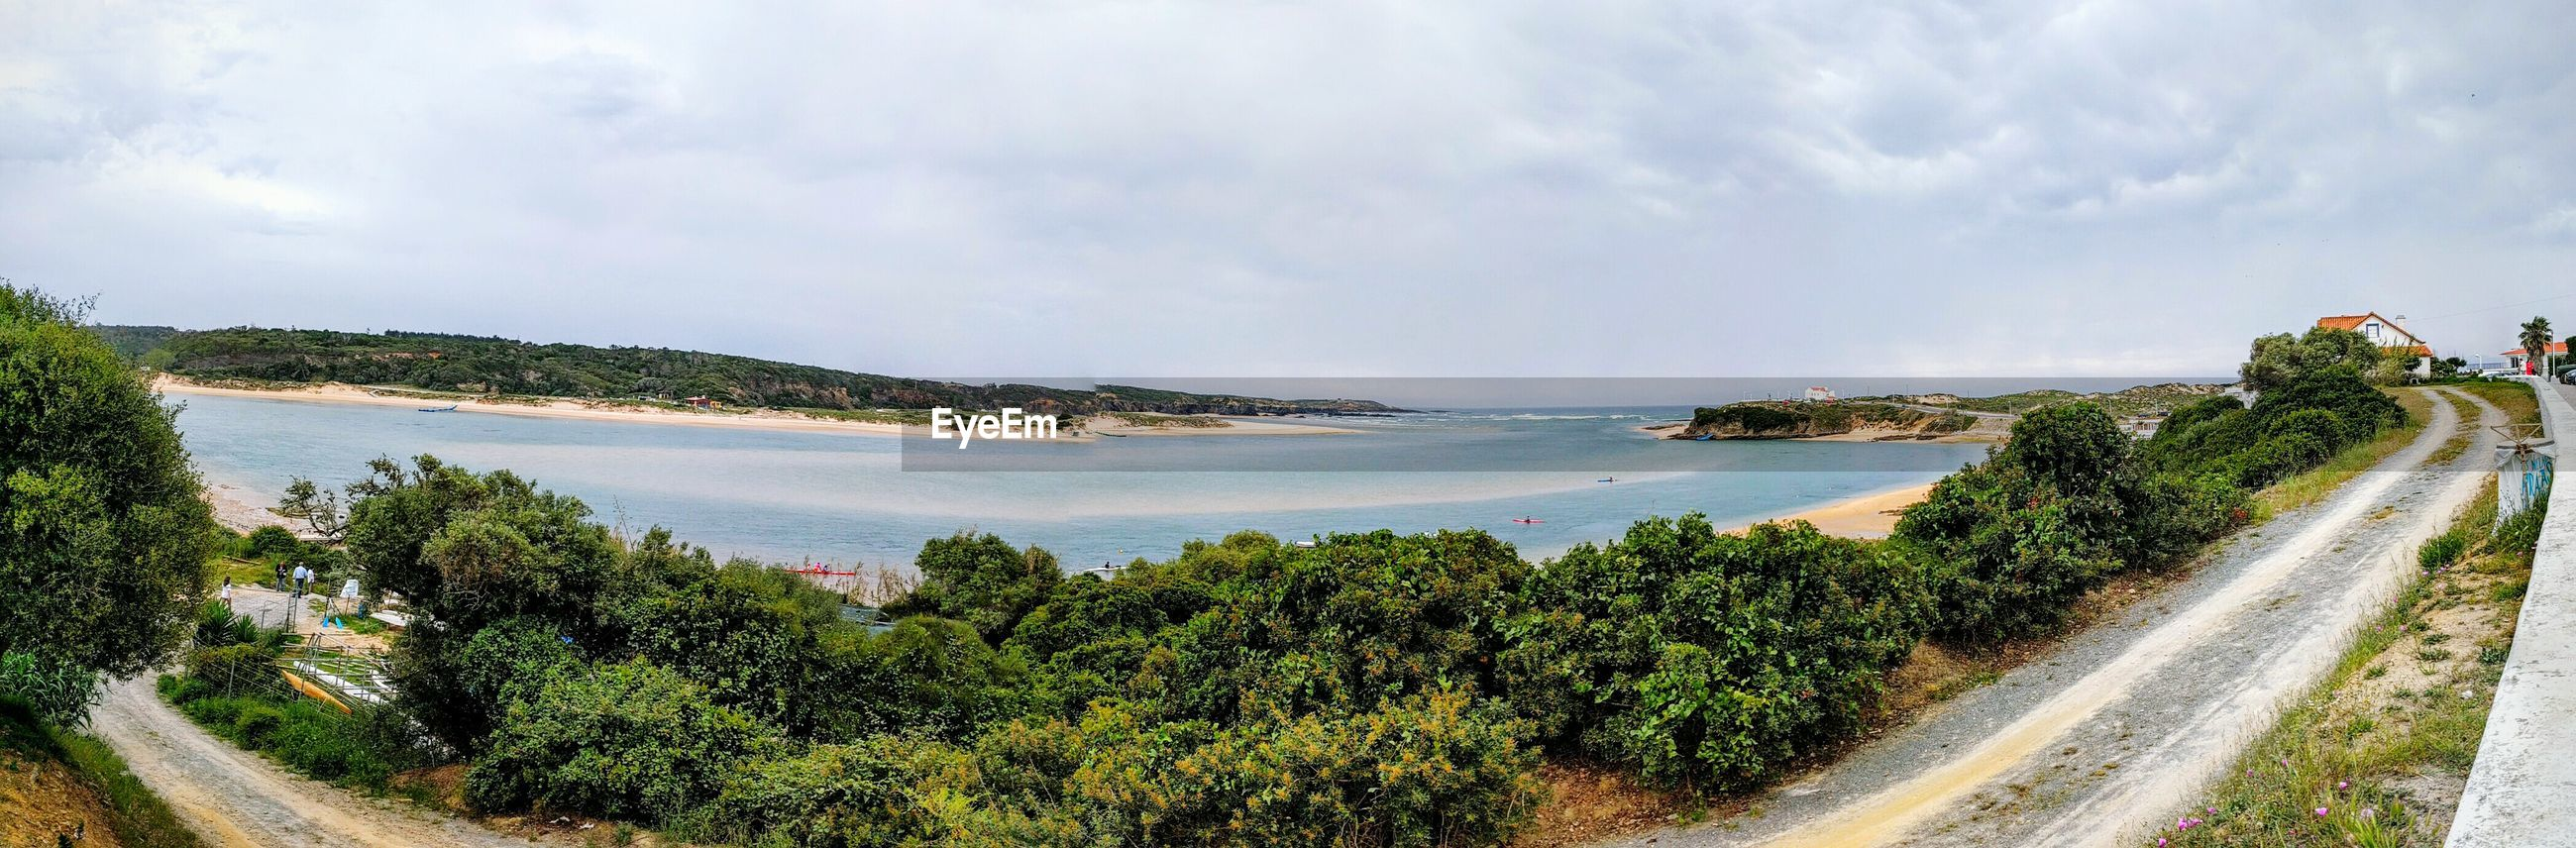 Panoramic shot of sea and trees against sky